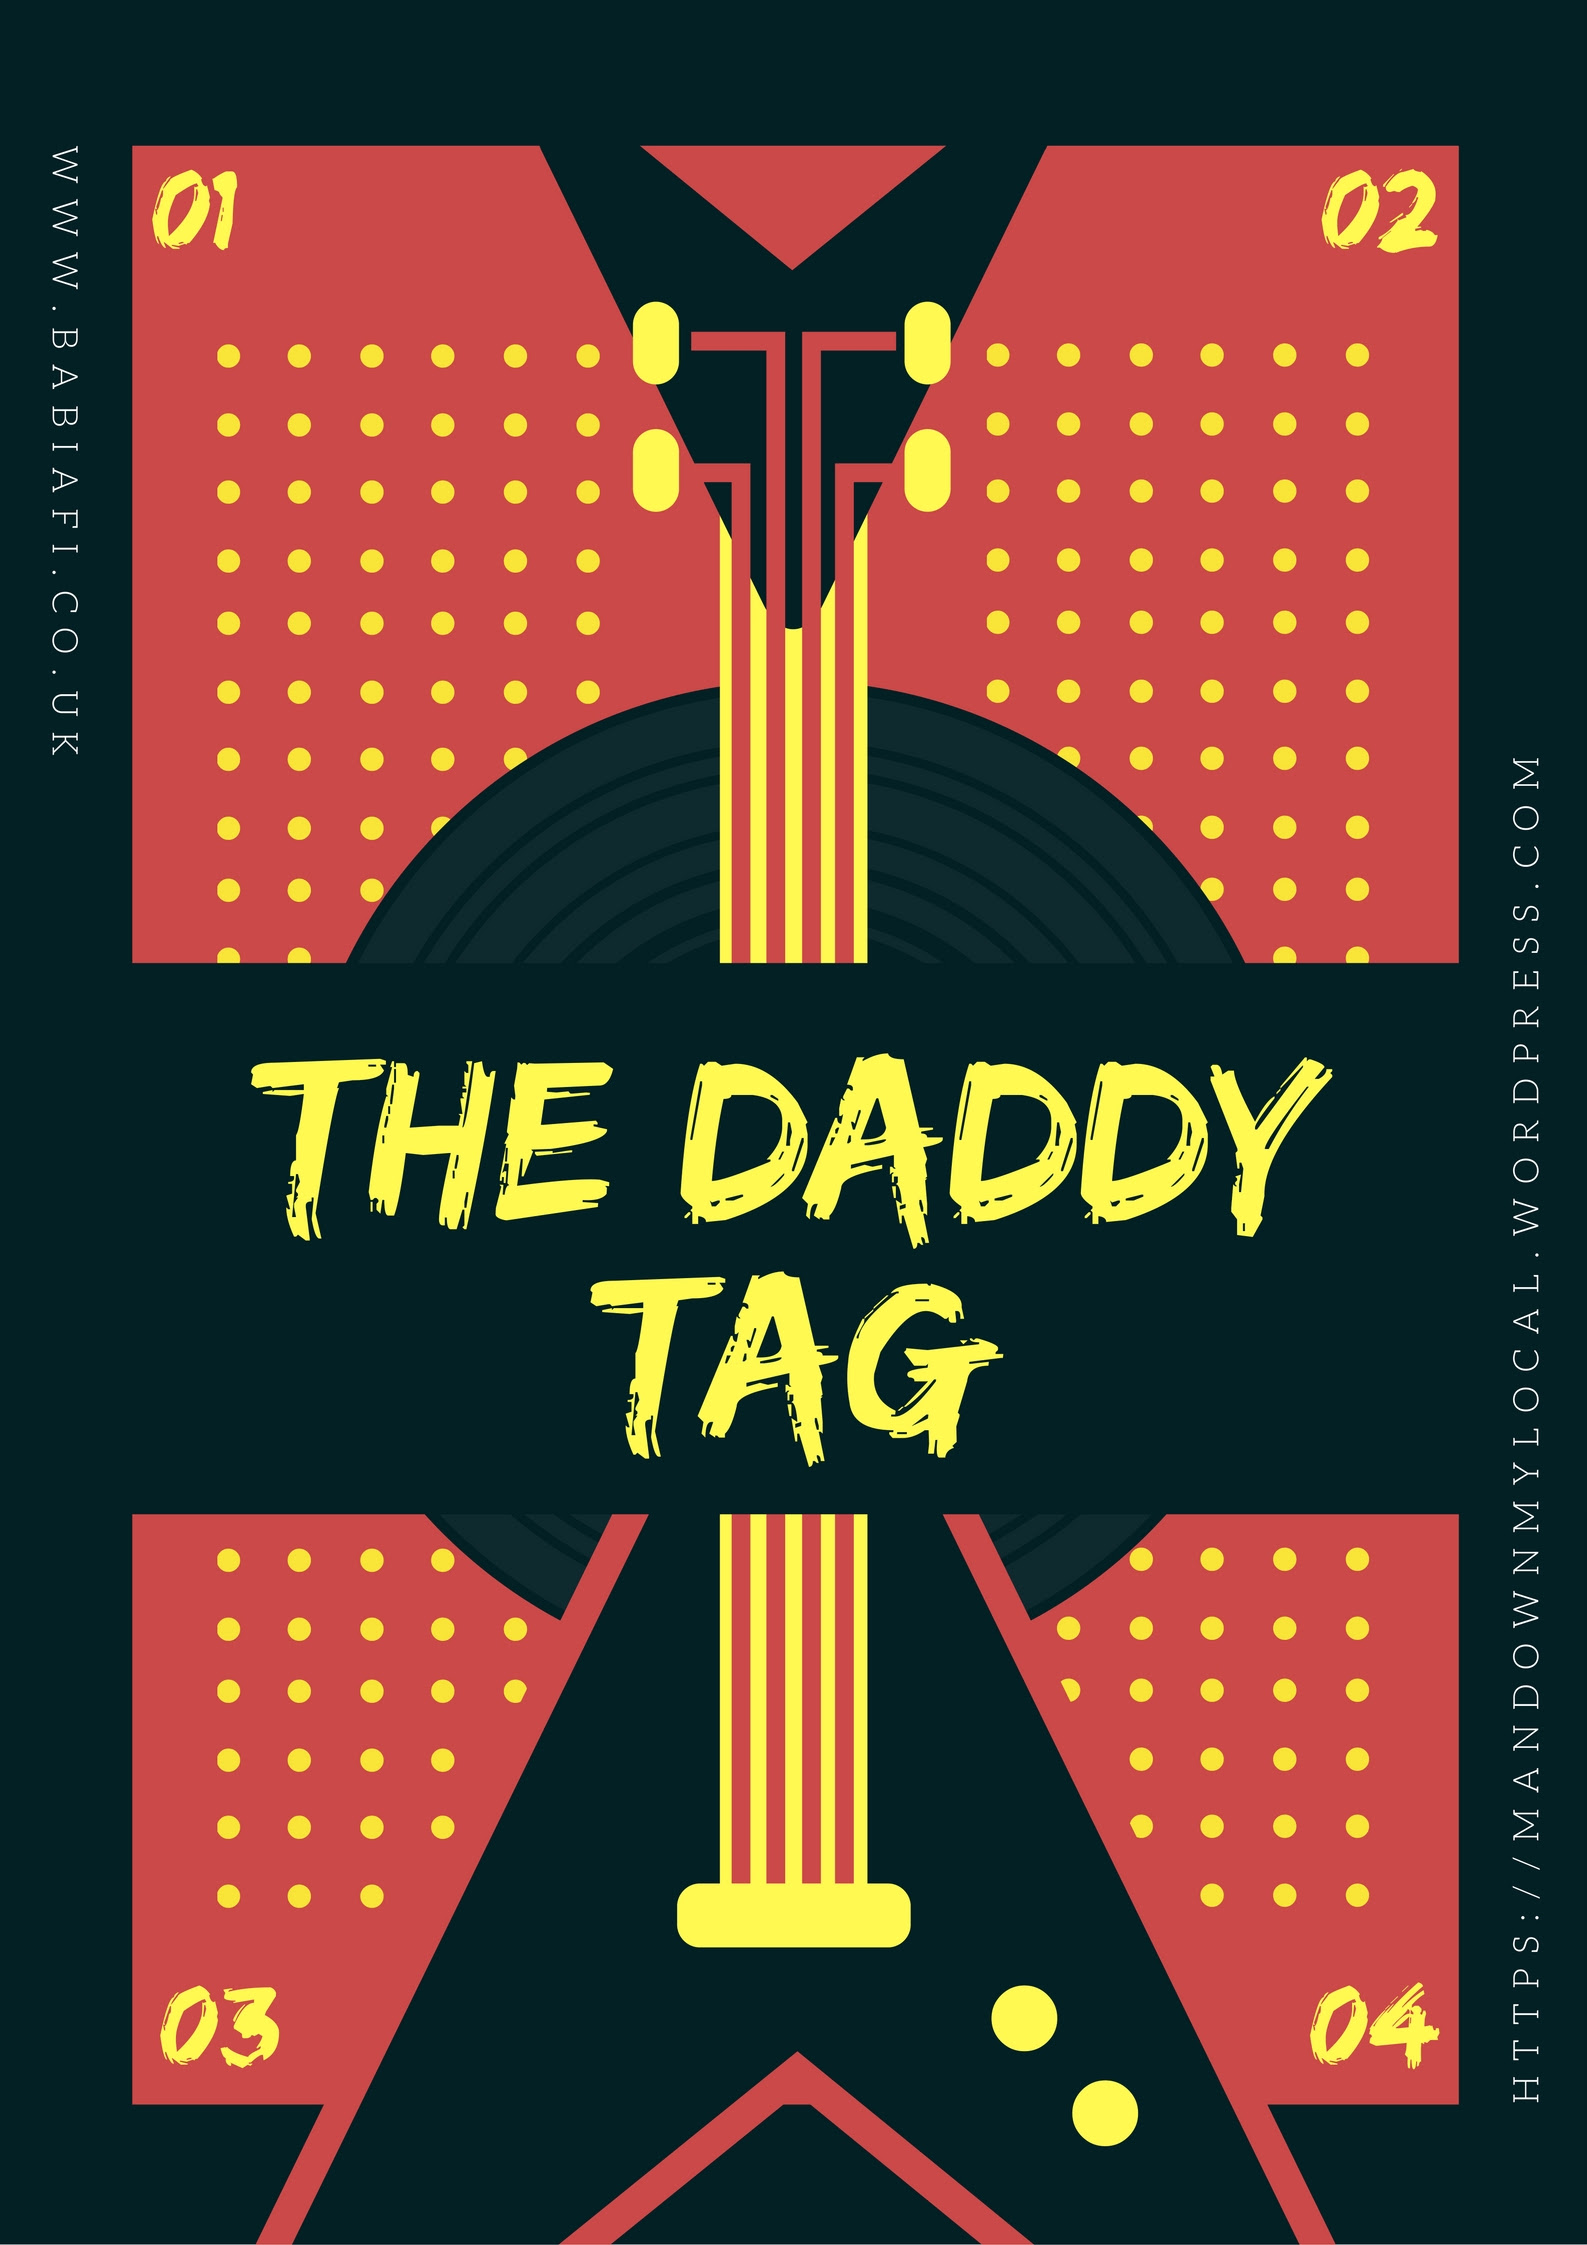 The Daddy Tag